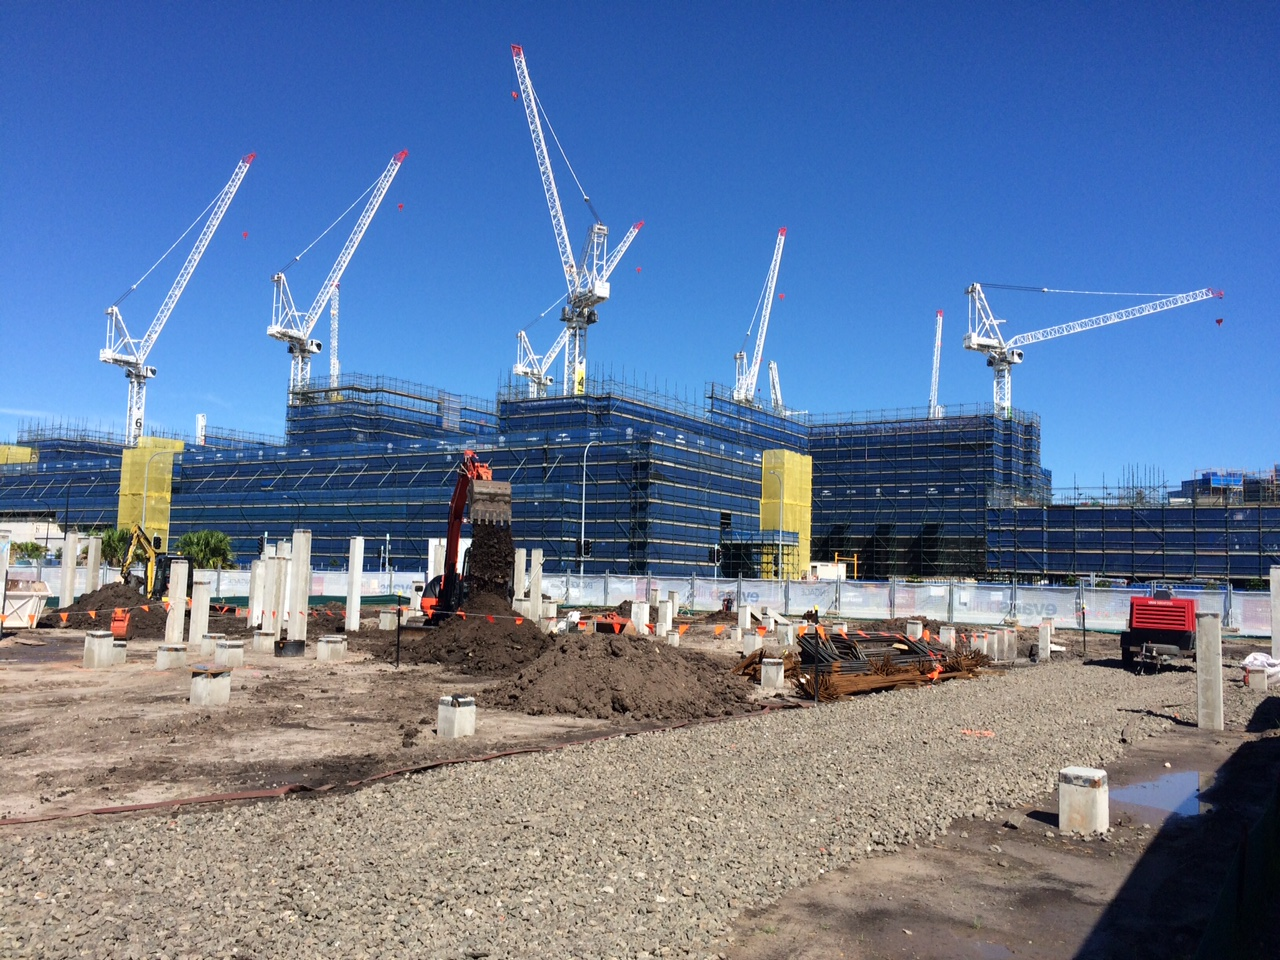 Building and construction confidence continues to grow for Sunshine construction